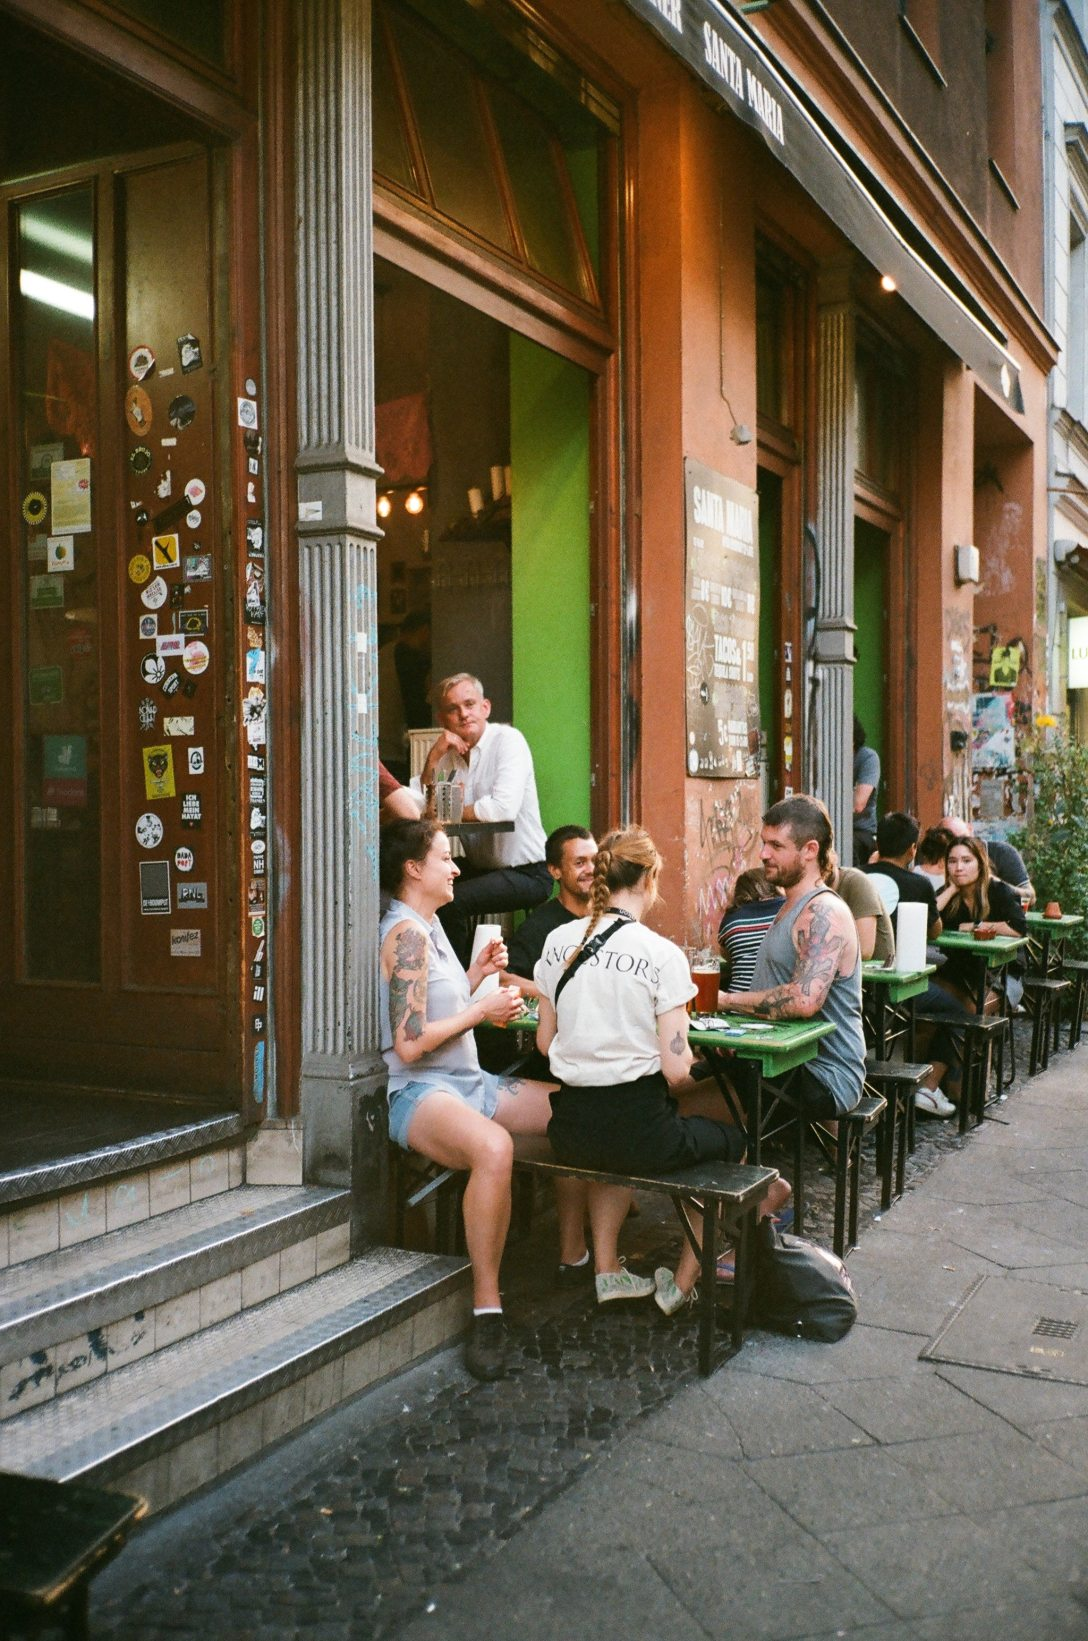 four people sitting at an outdoor table eating